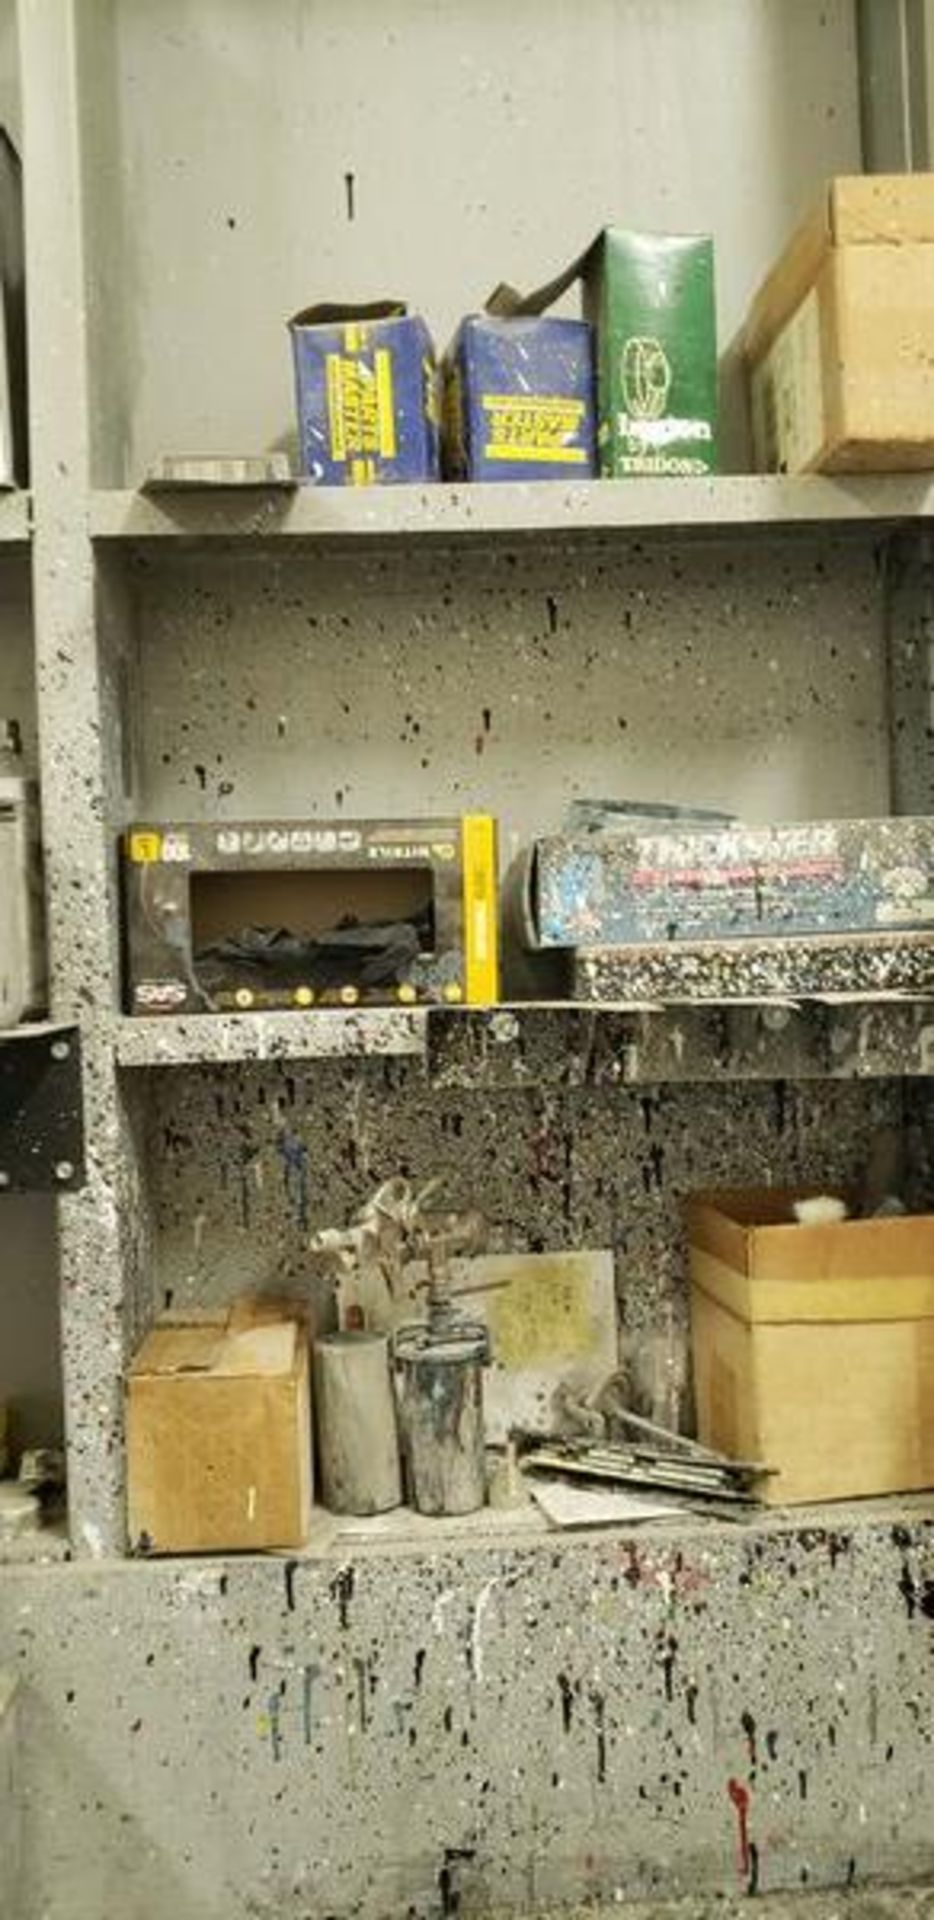 LOT OF PAINTING ITEMS ON LEFT TABLE, TOP AND BACK SHELF (TAGGED SPRAY GUNS AND OTHER TAGGED ITEMS AR - Image 8 of 12